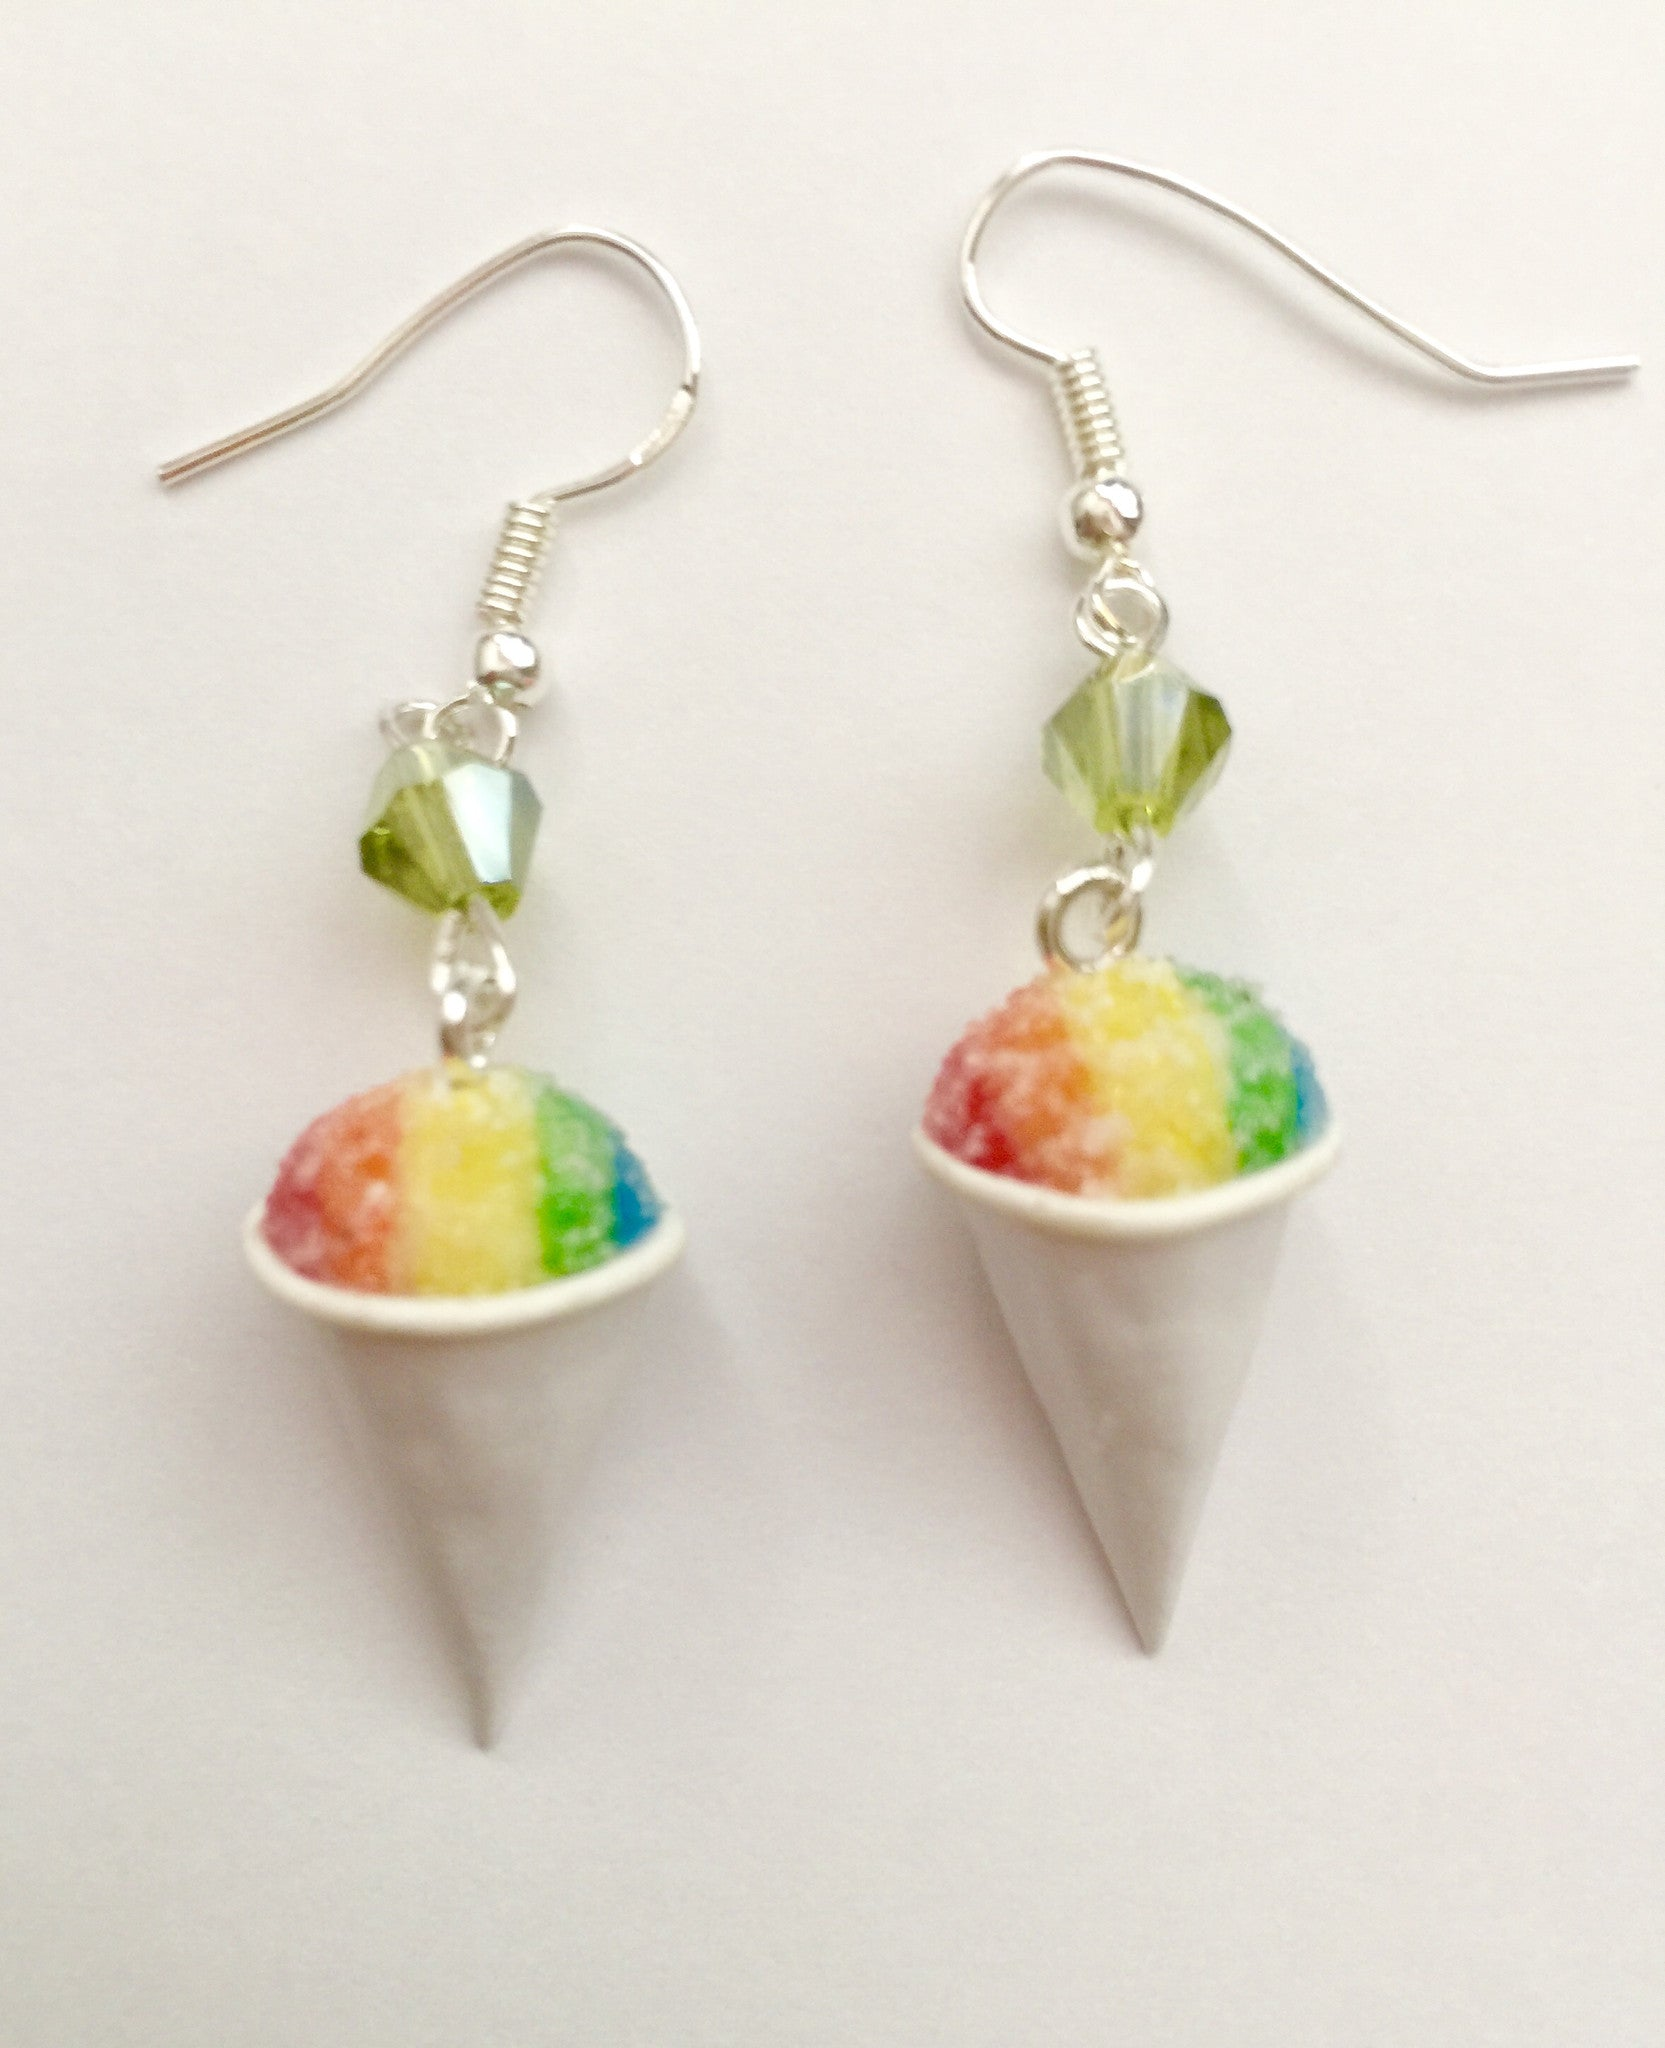 Snow Cone Dangle Earrings - Jillicious charms and accessories - 2